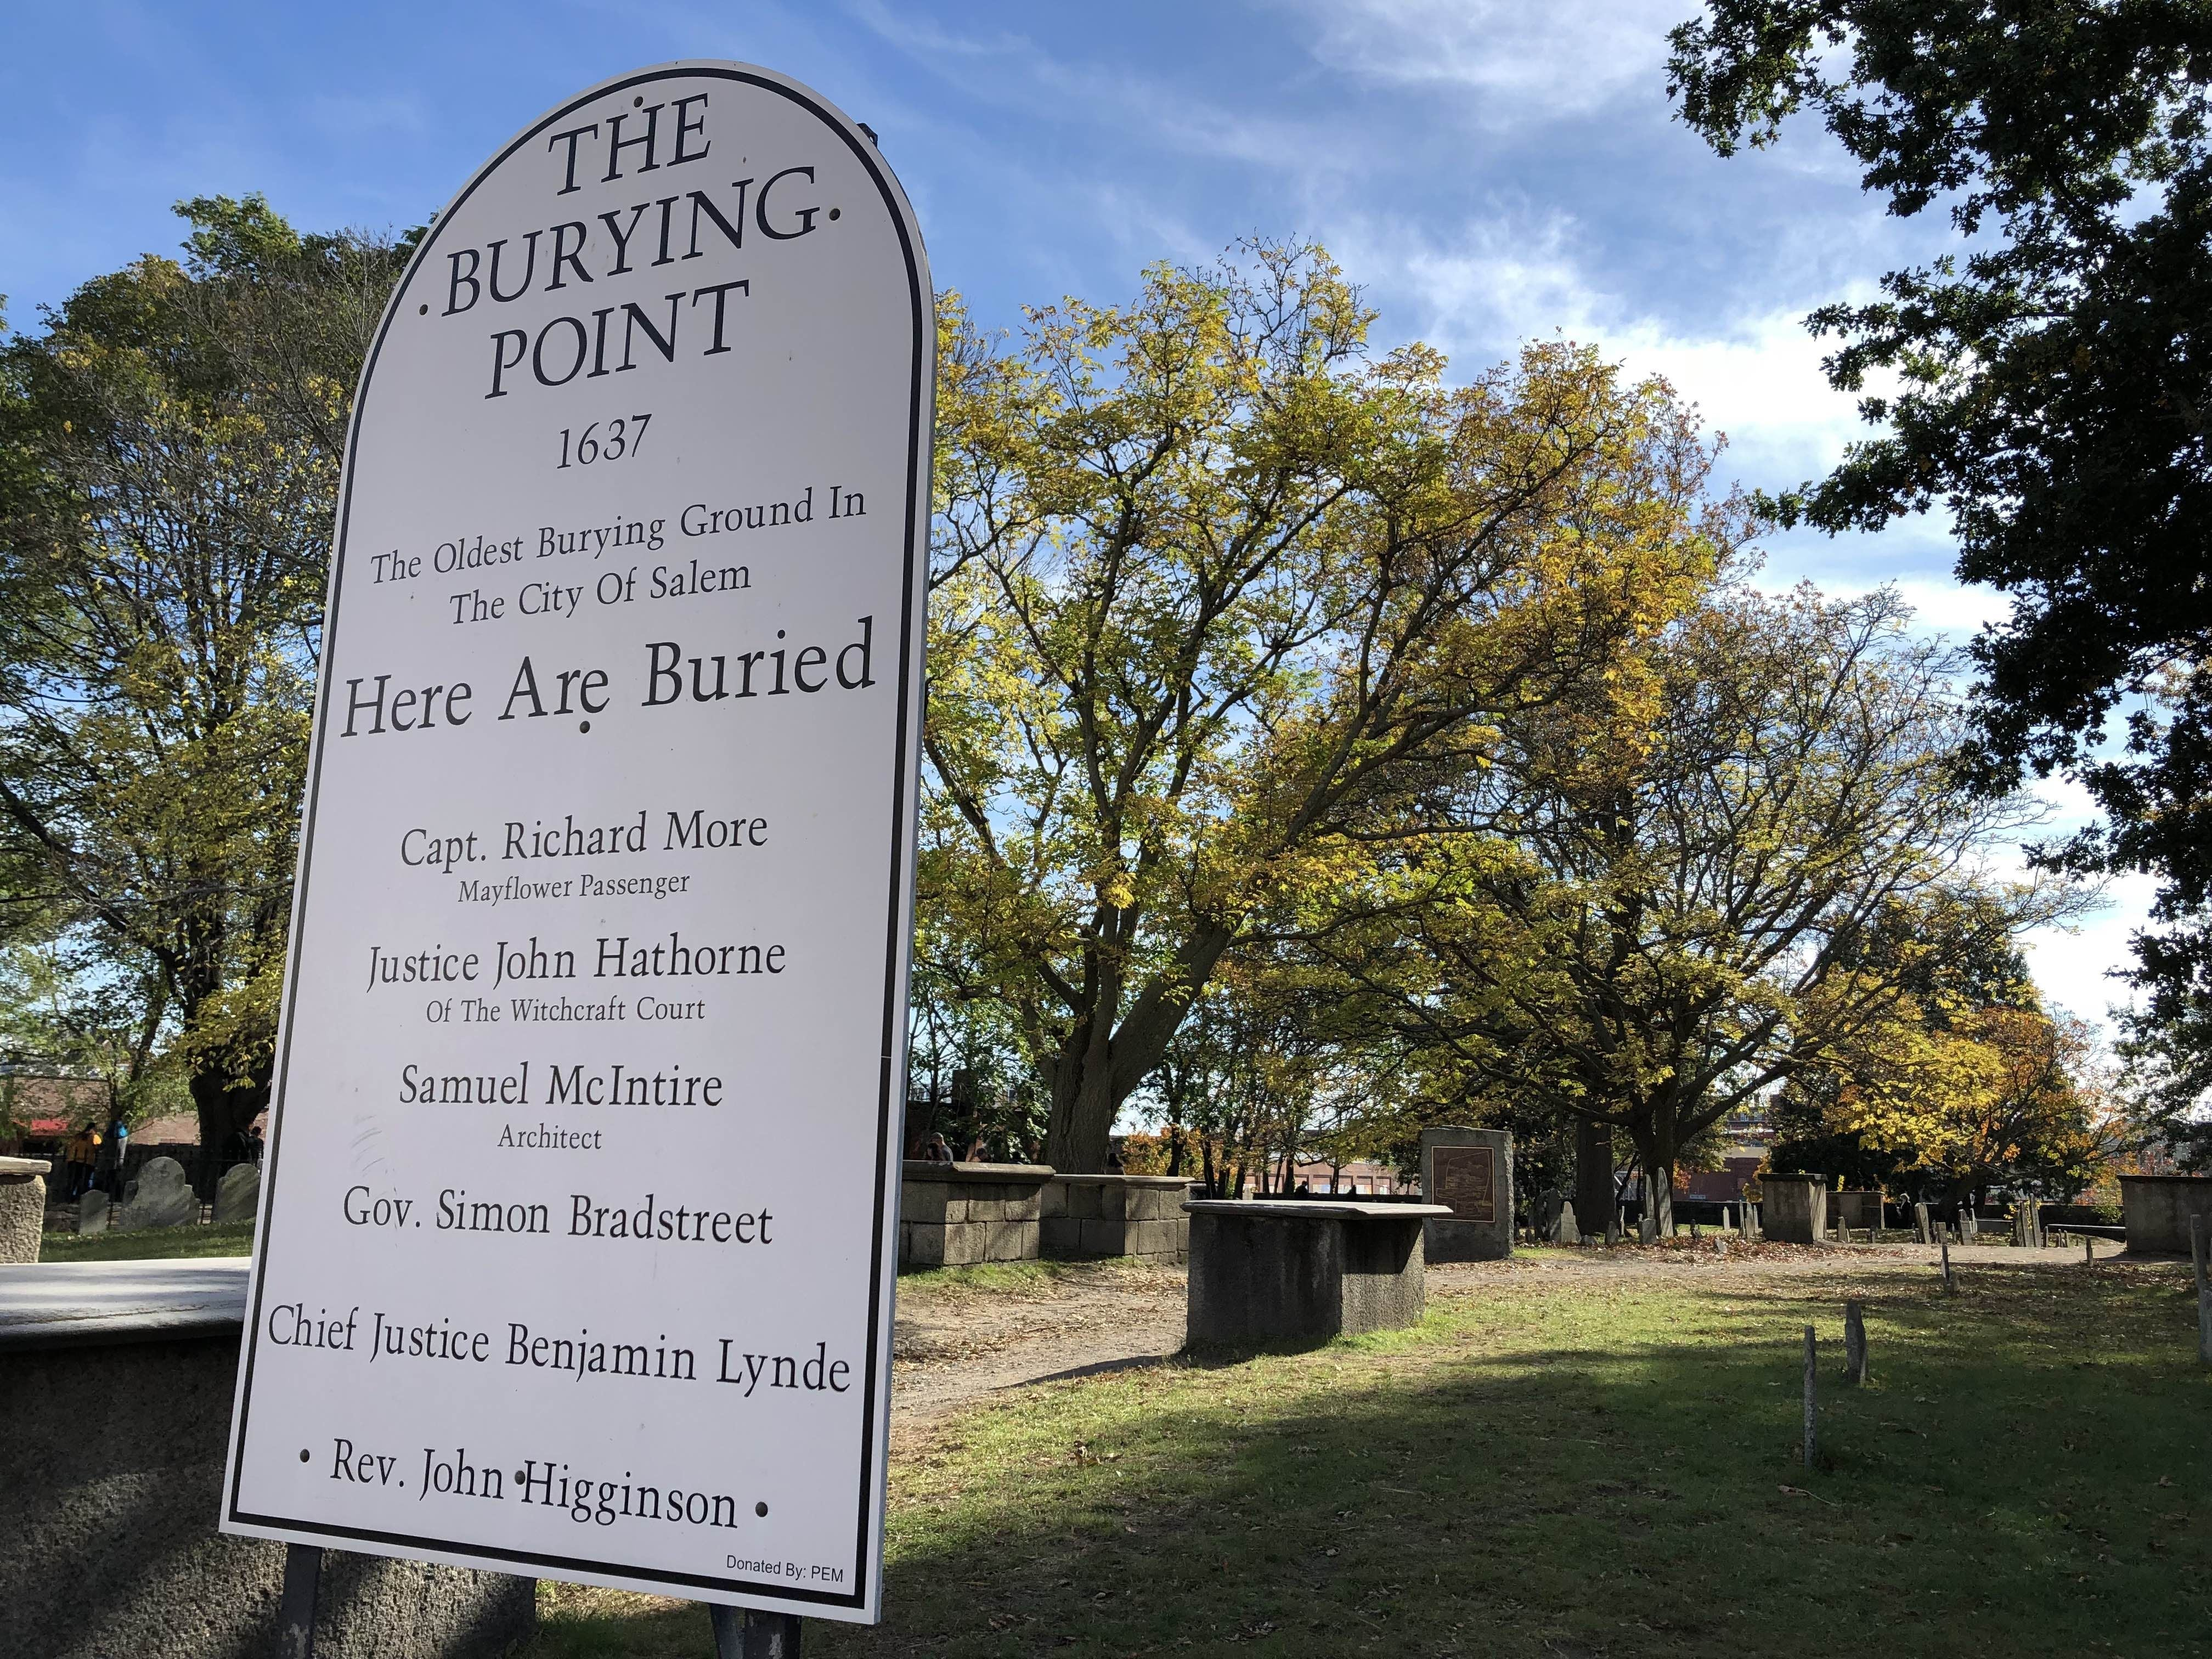 The Burying Point